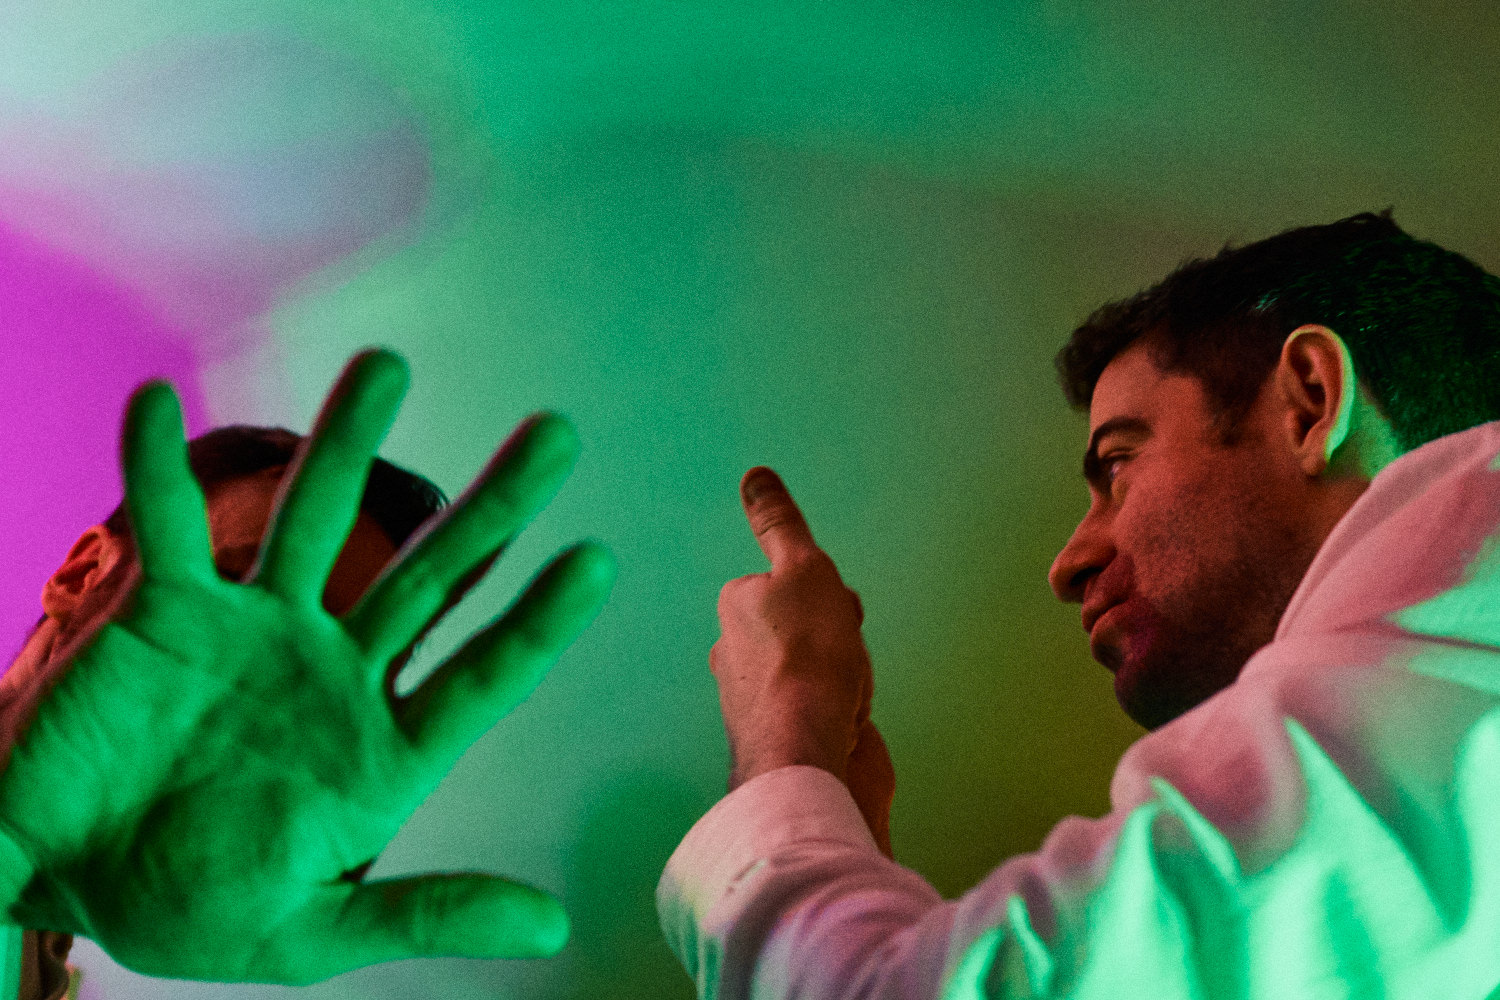 Two dancers make expressive hand gestures in green light